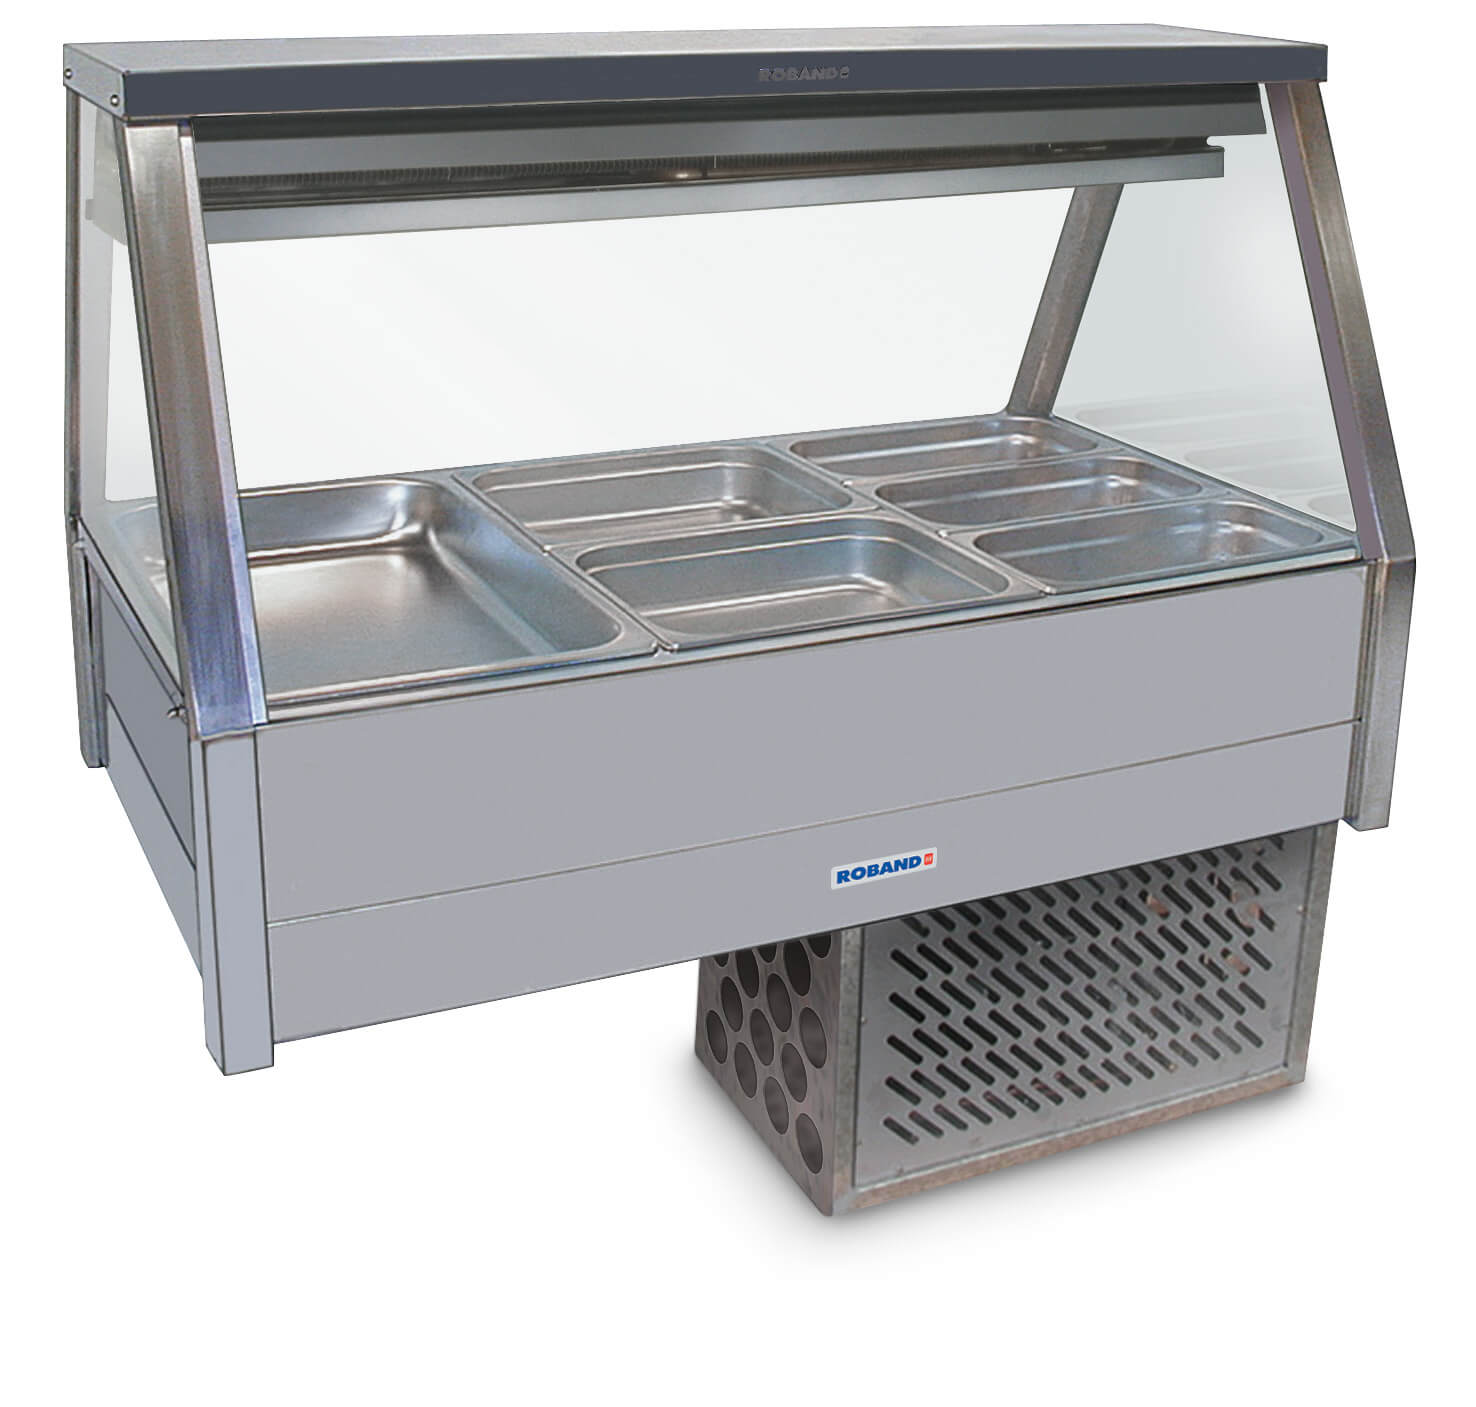 Roband Straight Glass Refrigerated Display Bar, 6 pans